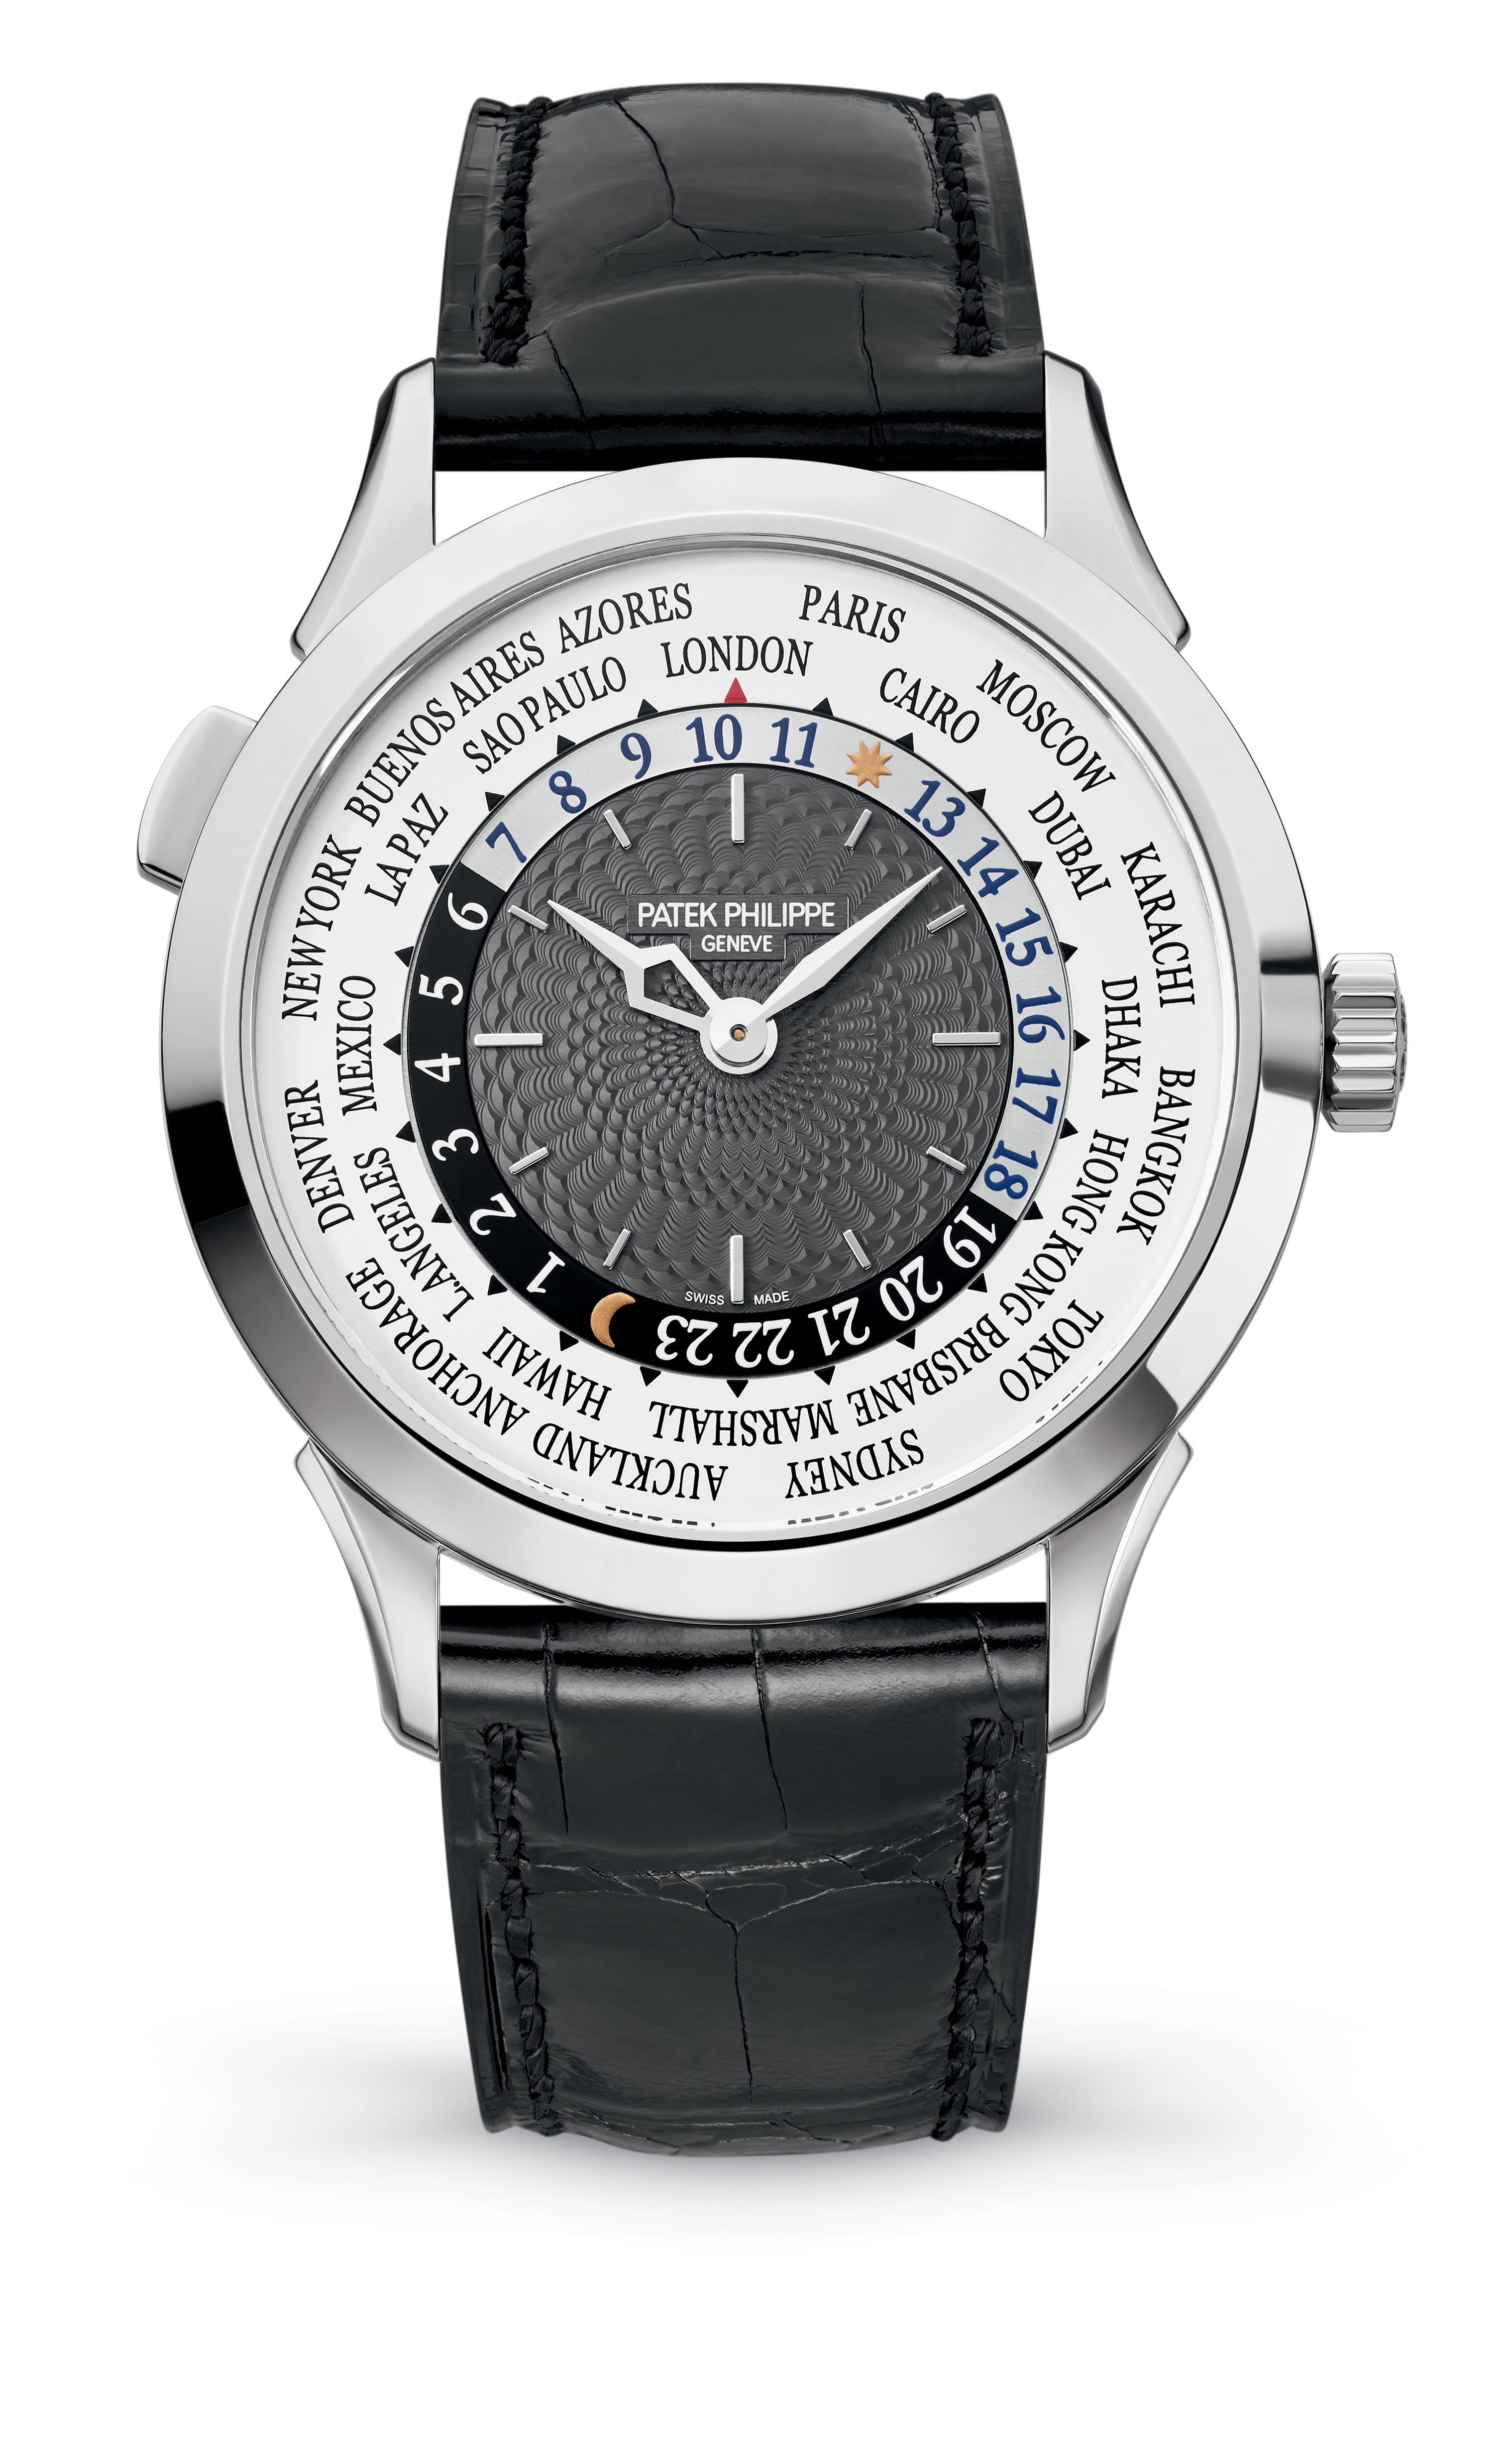 World Time - 5230G-001 - 5230G-001